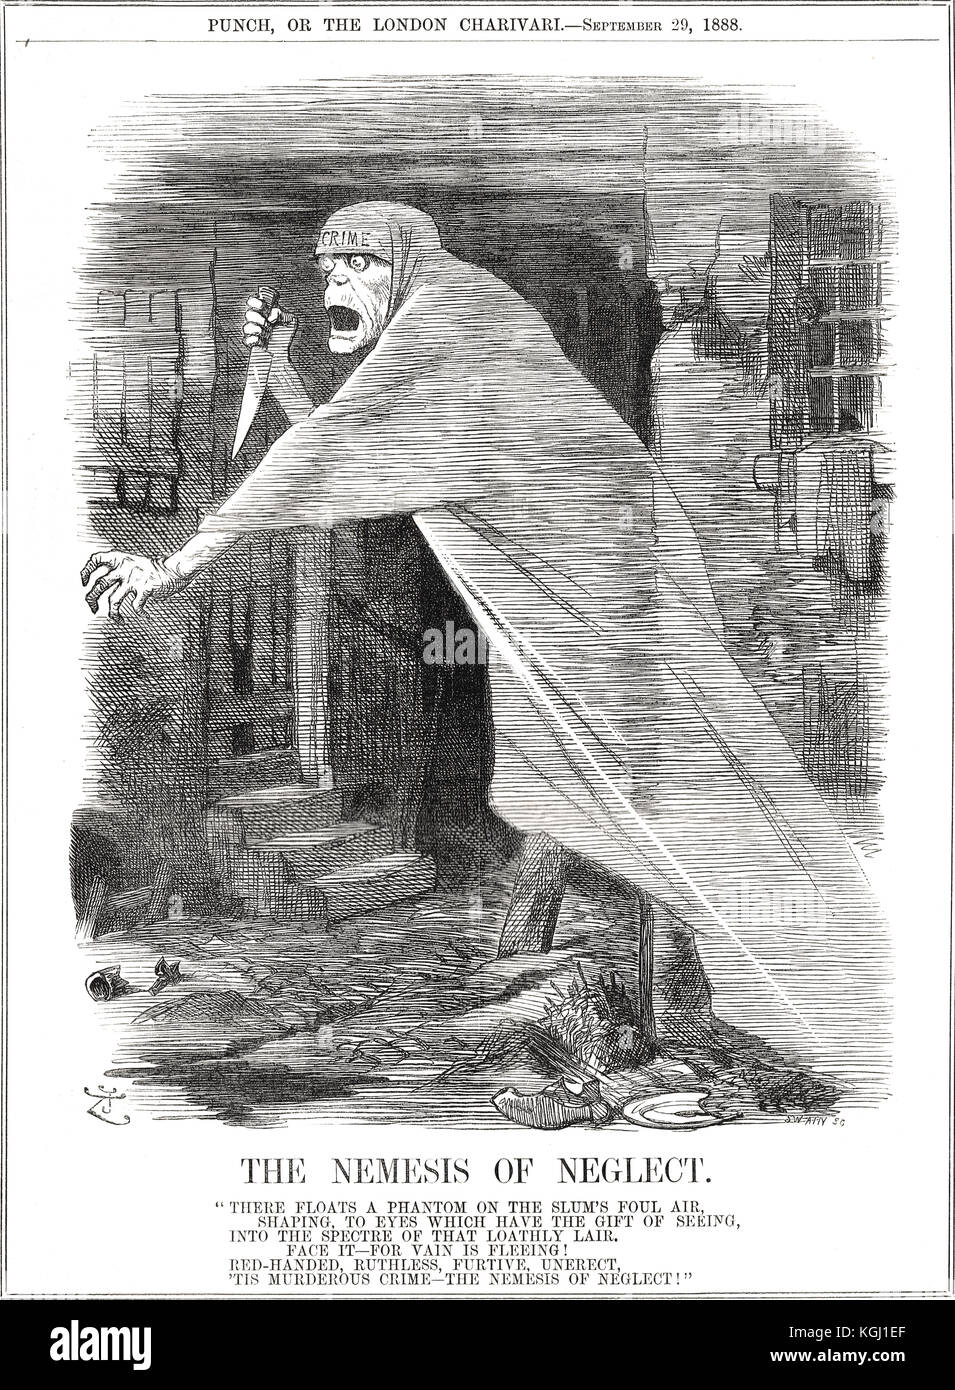 Jack the Ripper Punch Cartoon 5, 1888, The nemesis of neglect - Stock Image